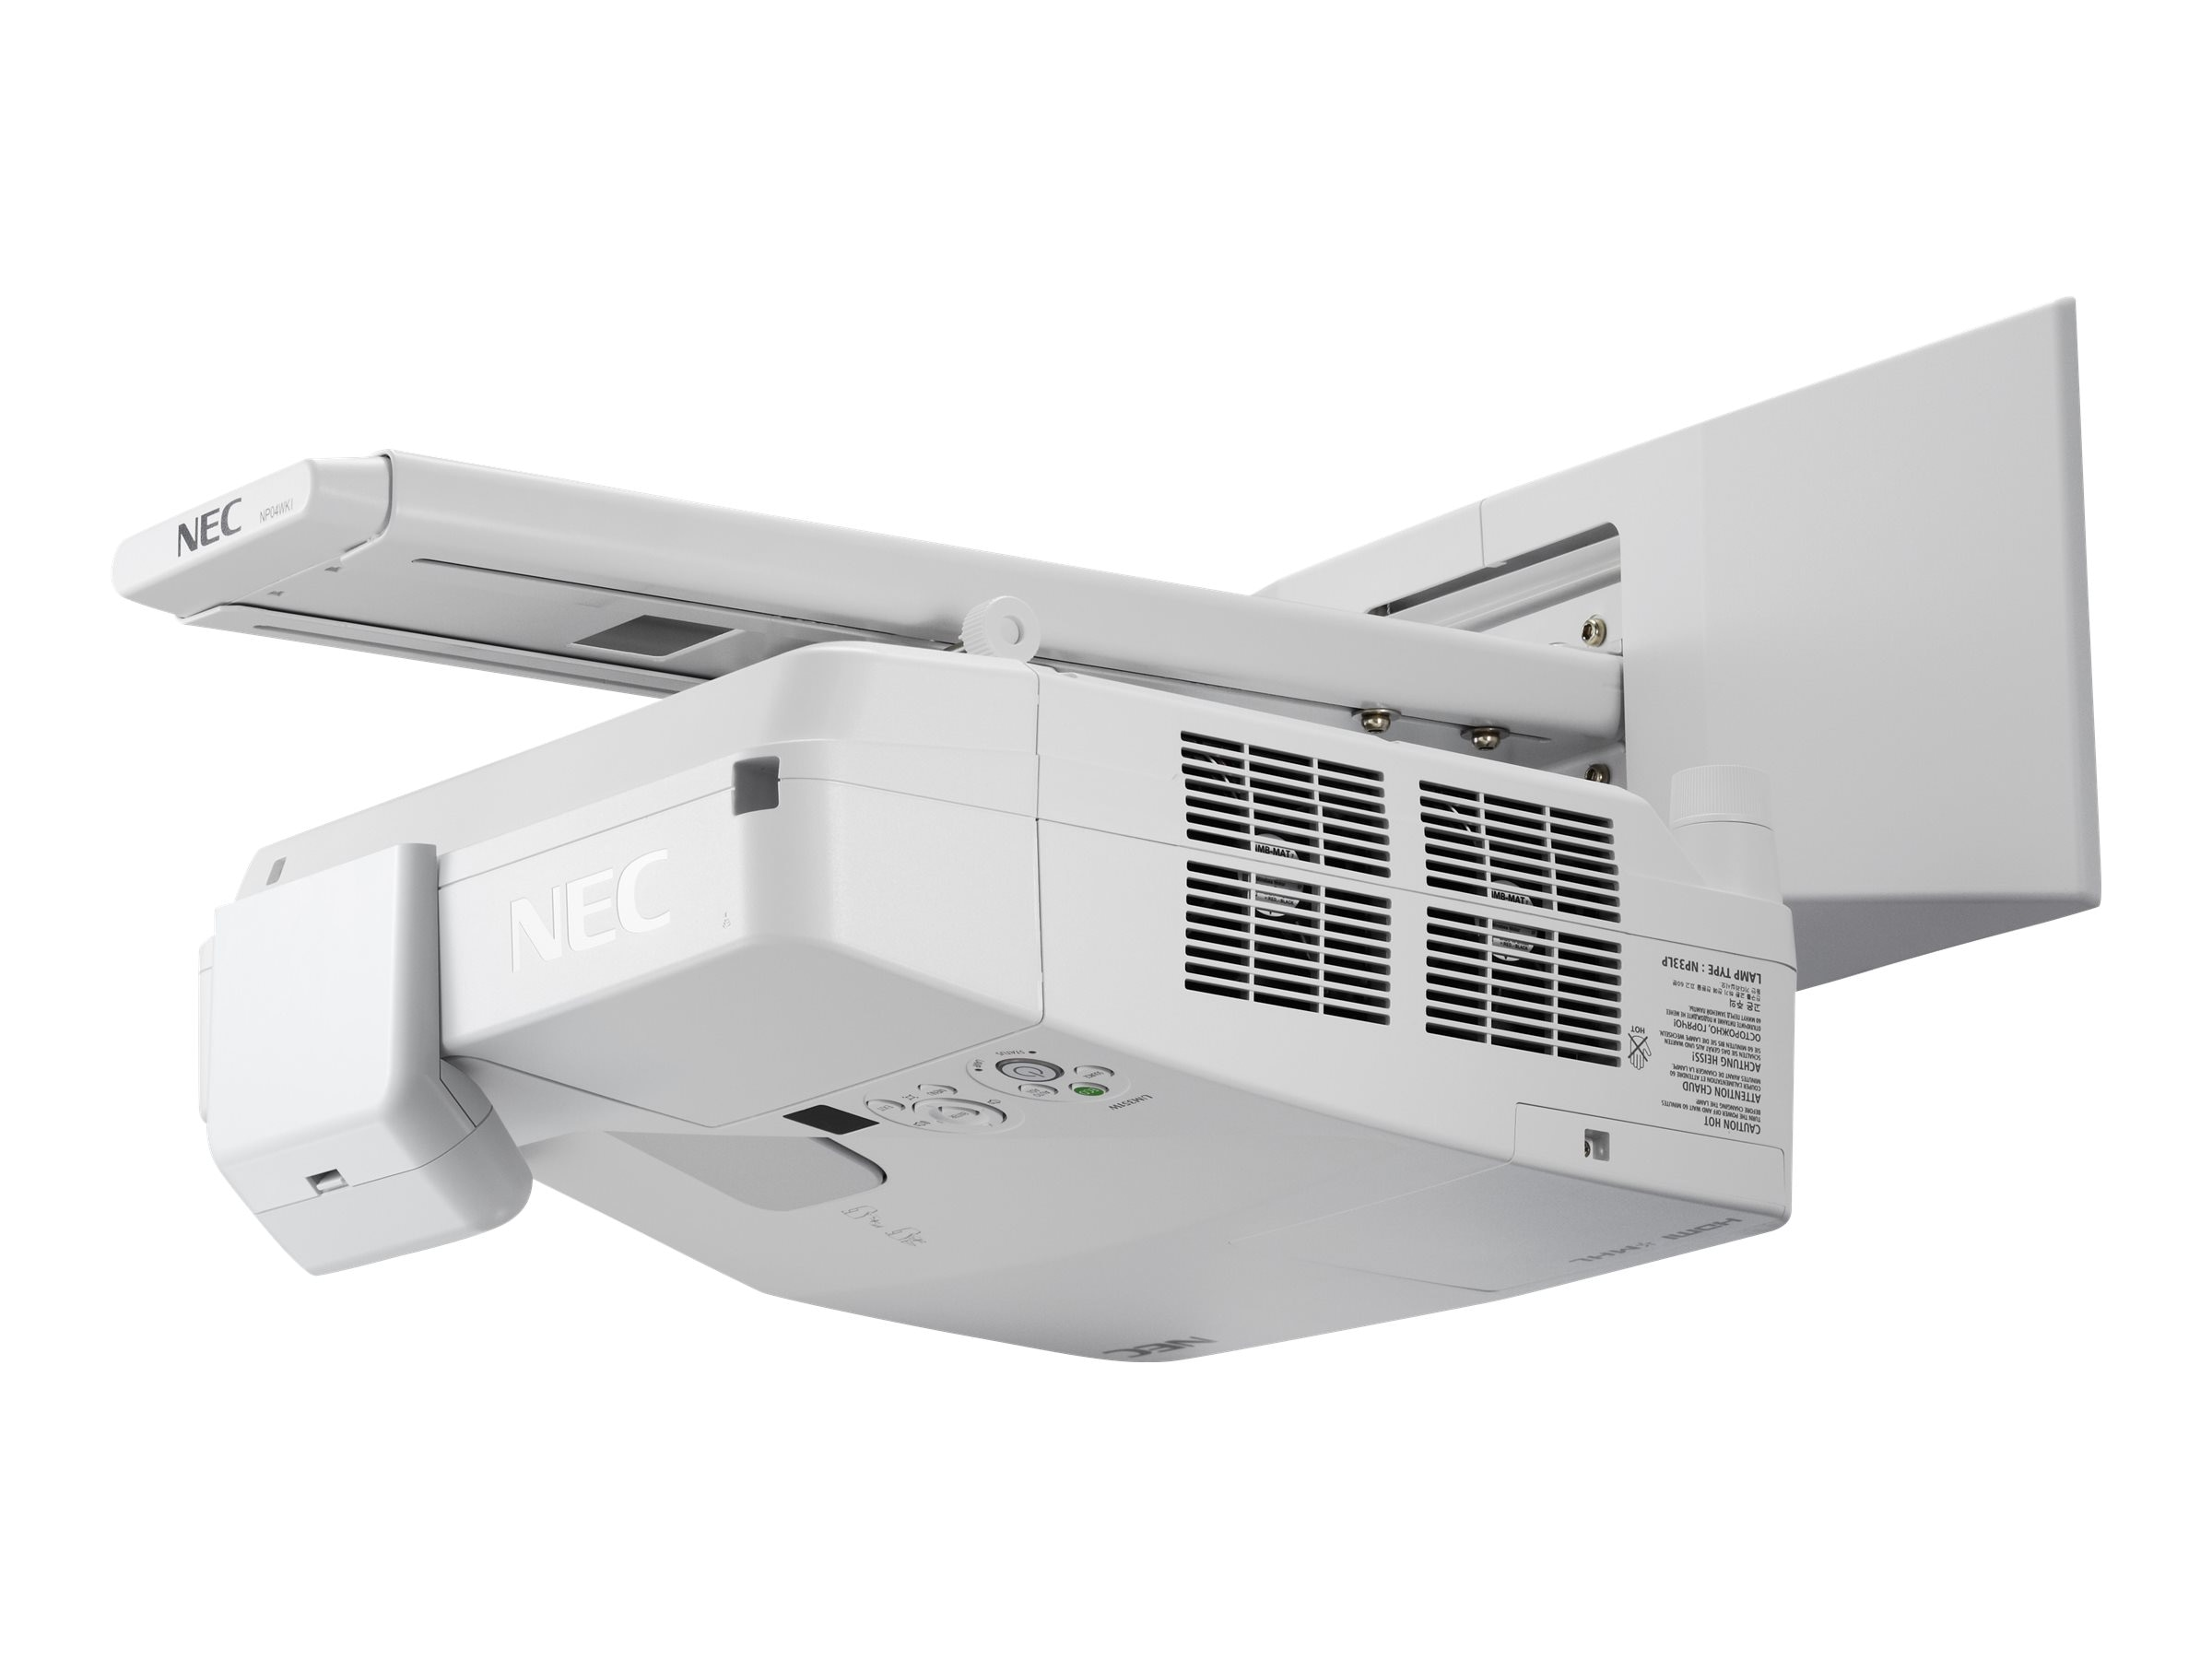 NEC UM351W Ultra Short Throw LCD Projector, 3500 Lumens, White with Interactive Module, Wall Mount, Pens, NP-UM351WI-WK, 18193171, Projectors